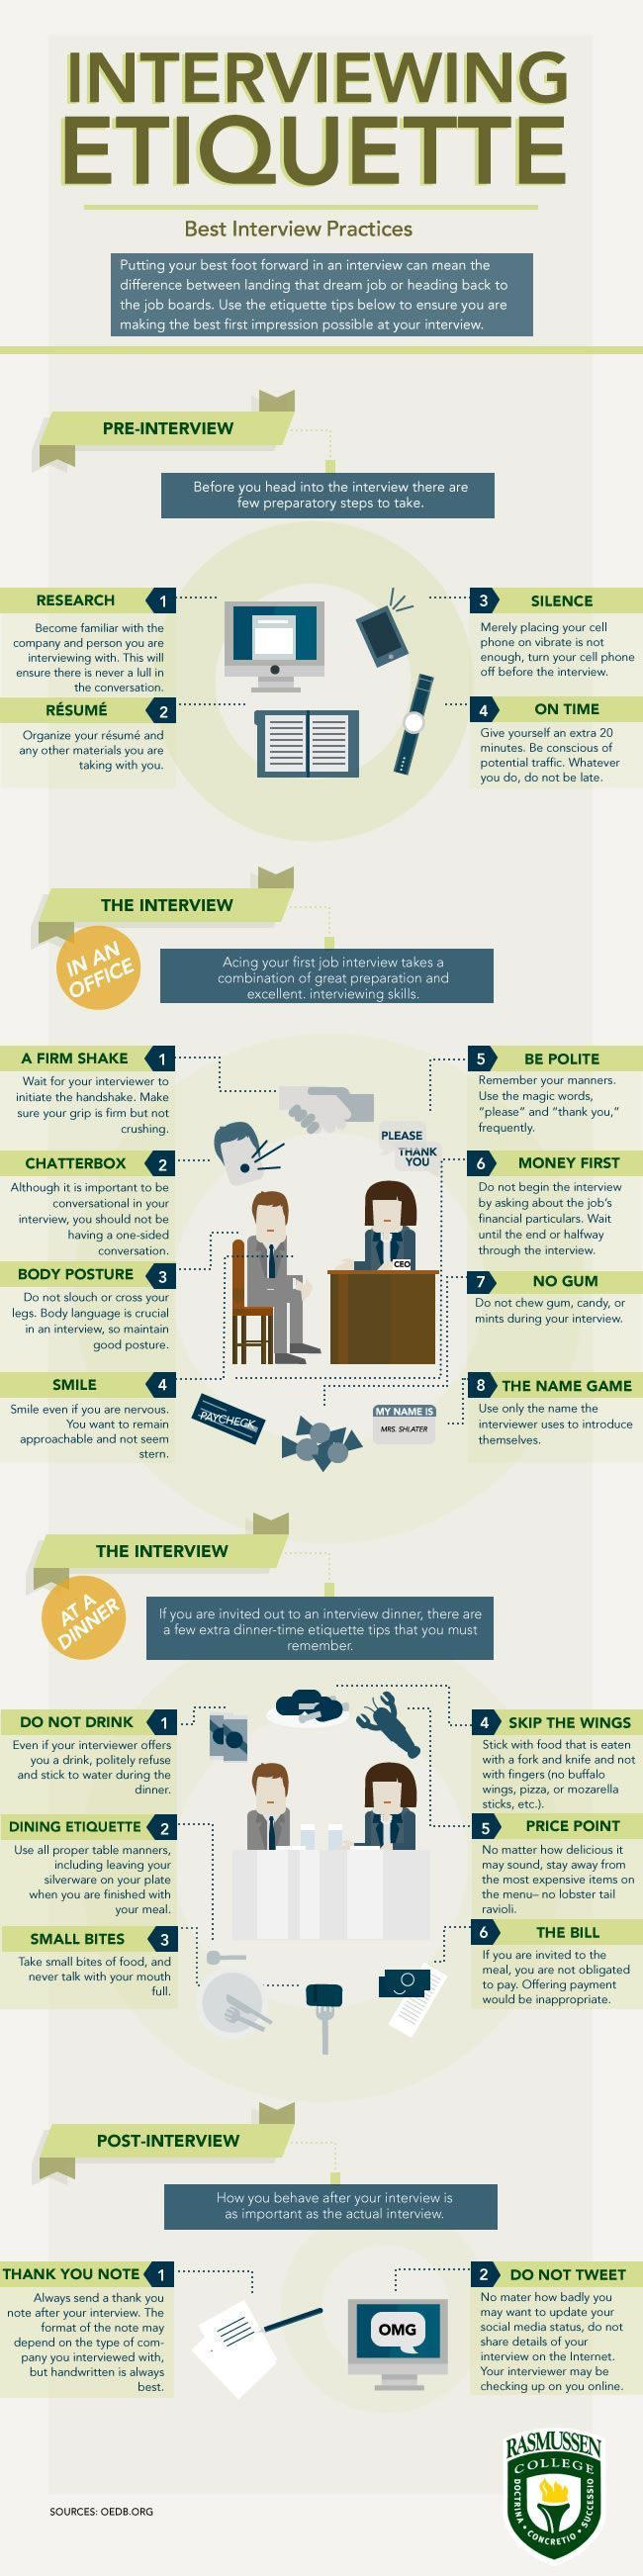 17 best images about interview tips interview body 17 best images about interview tips interview body language and professional dresses